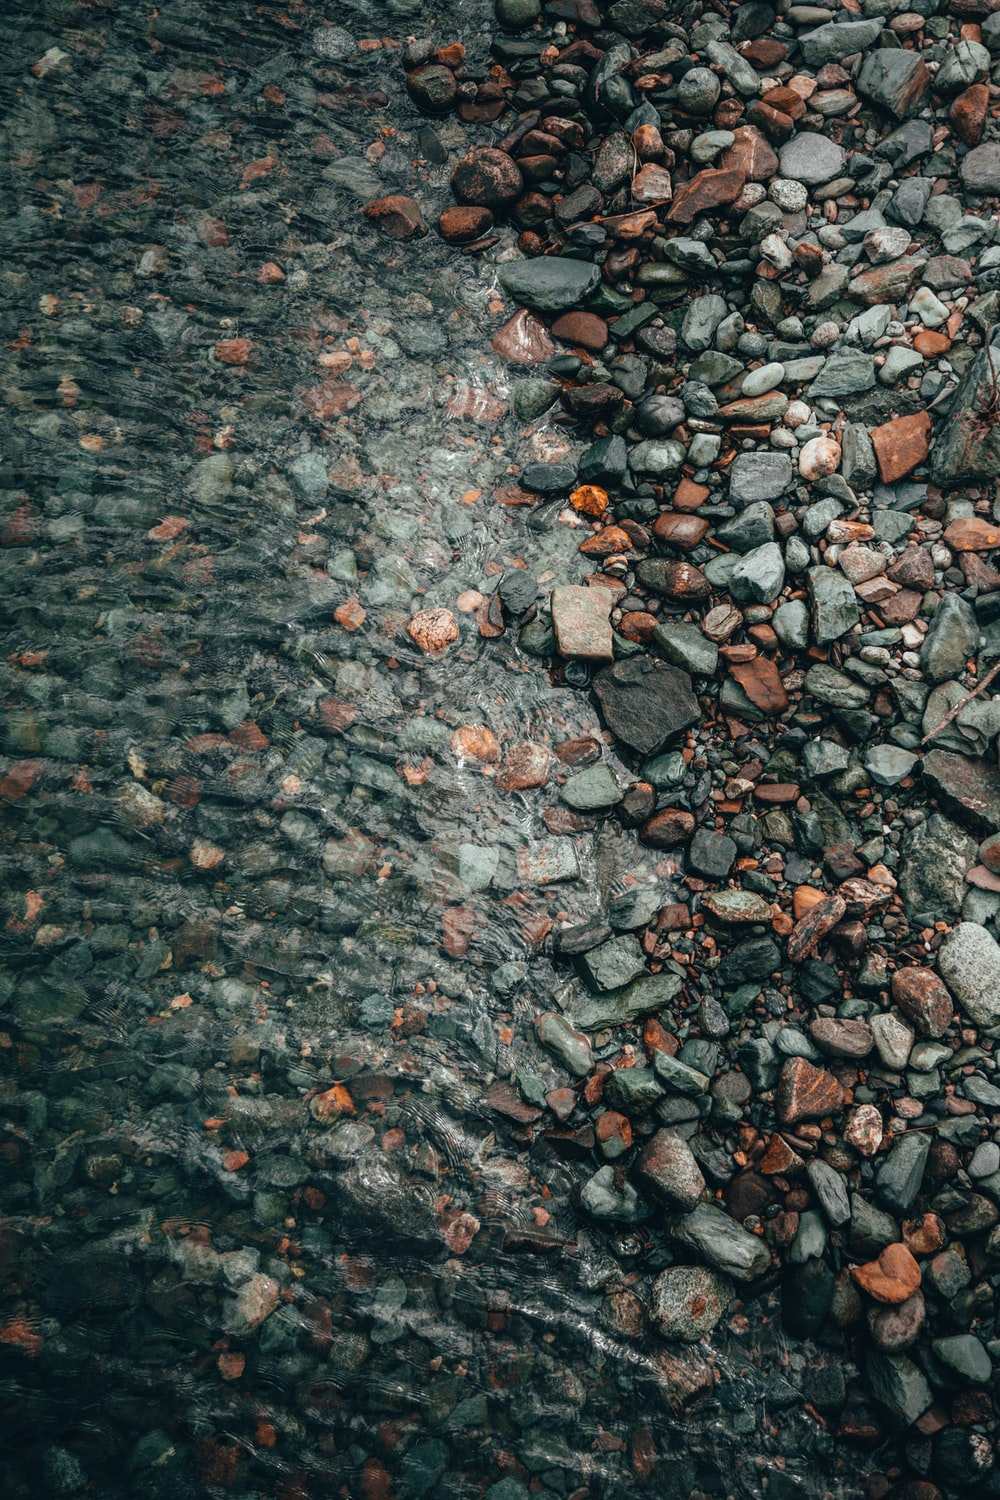 brown and gray stones on the ground